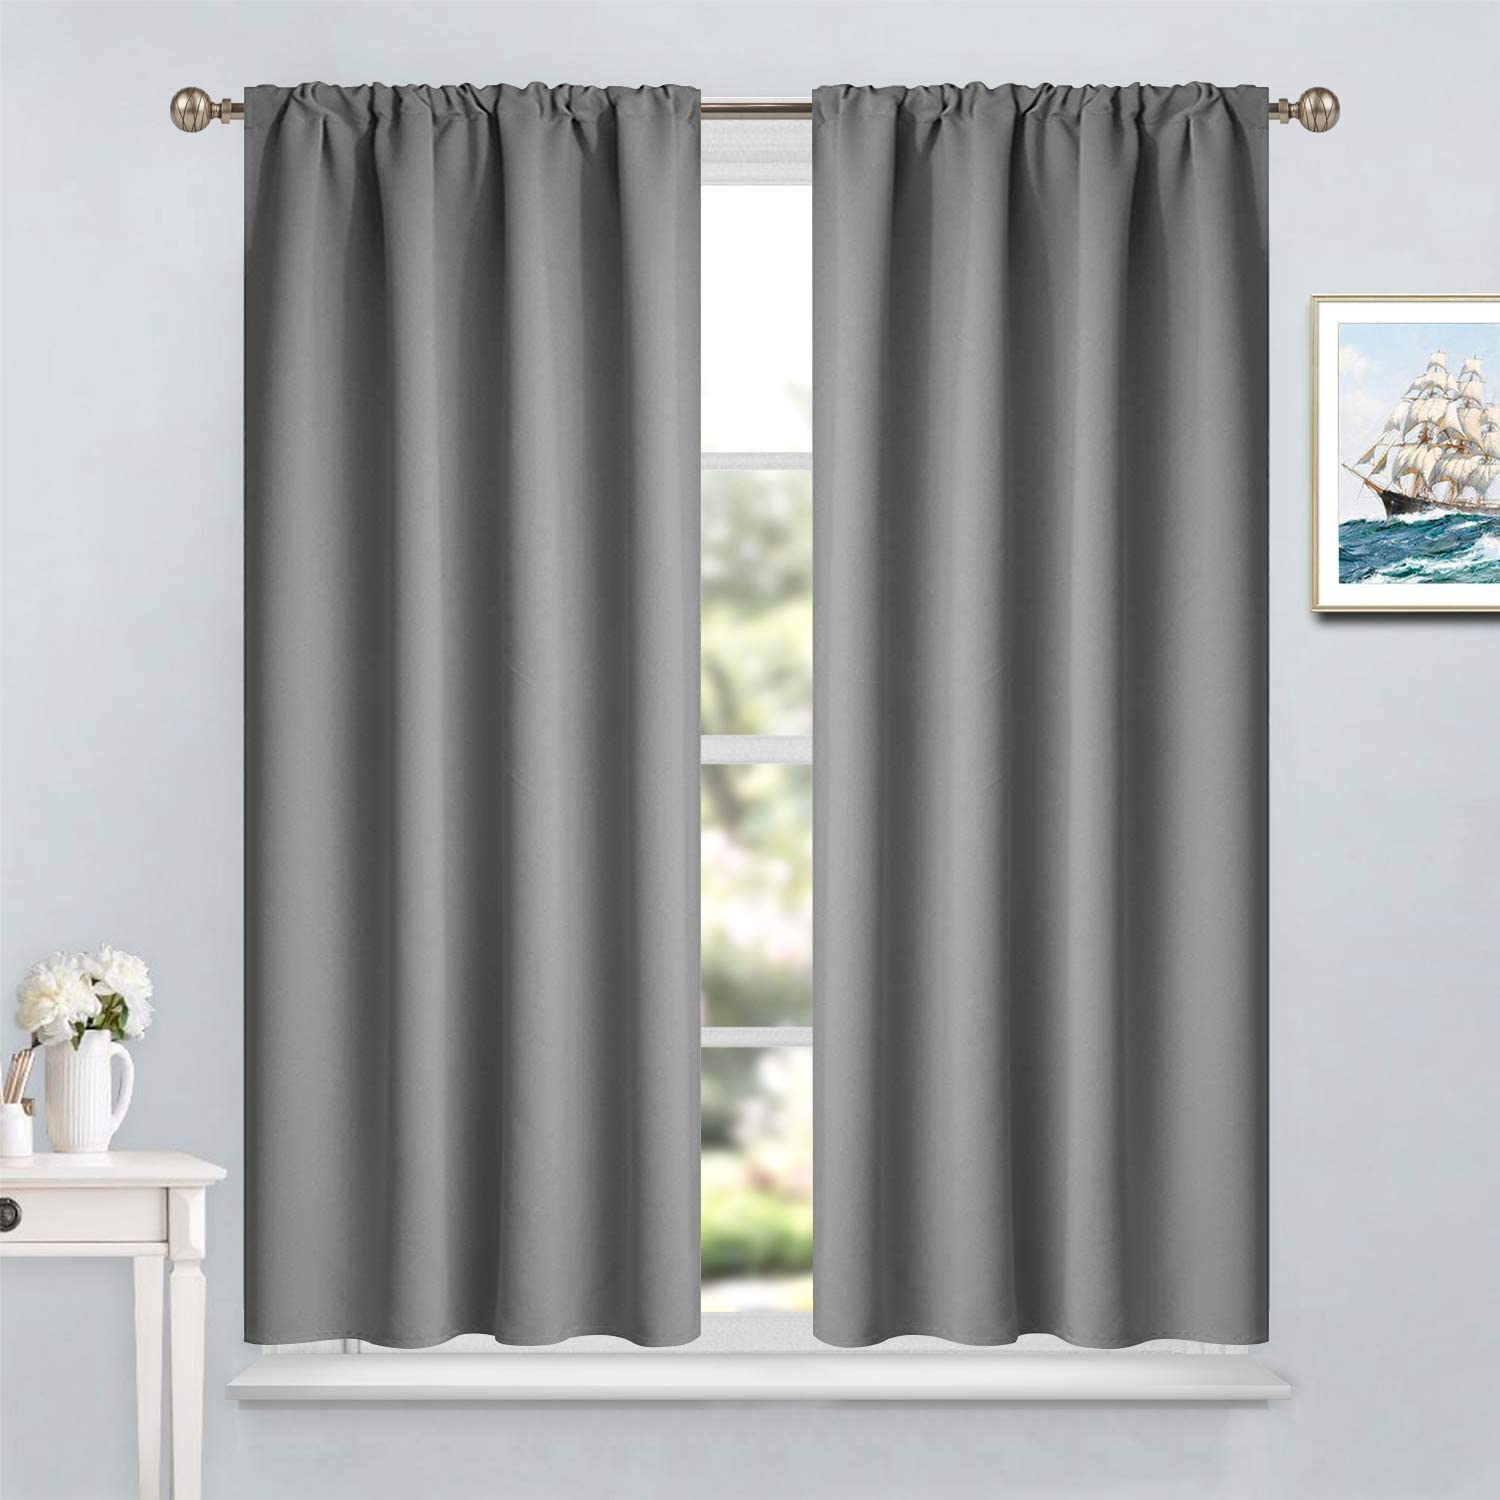 yakamok gray rod pocket curtains room darkening thermal insulated blackout curtains for bedroom window treatment drapes for living room 38w x 45l